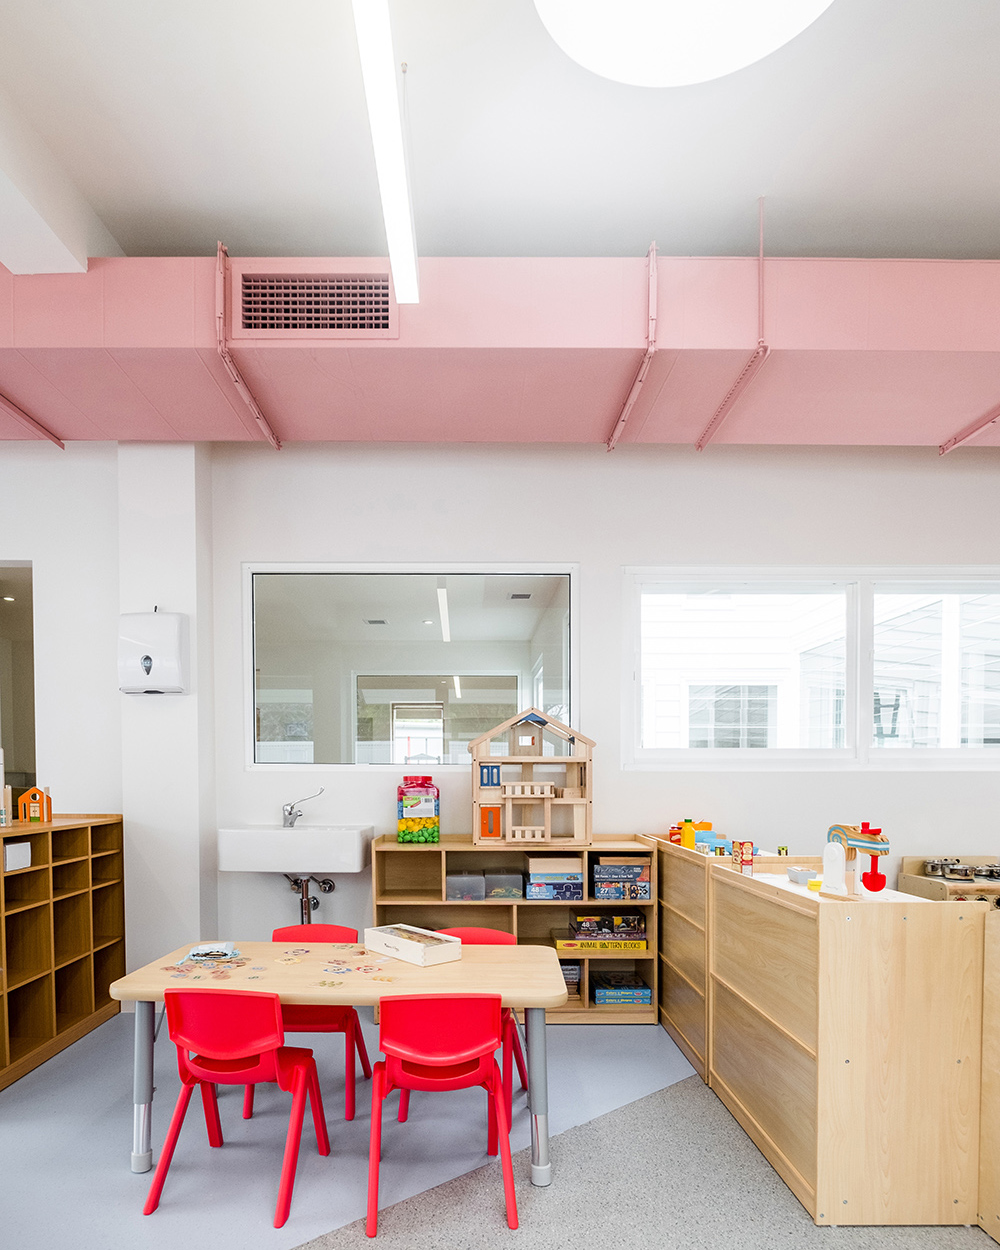 Dulux Colour Awards 2019 Australian Grand Prix Winner Project _ Giraffe Learning Centre (NSW) by Supercontext Architecture Studio Photographer _ Adam Madigan and Bob Barrett